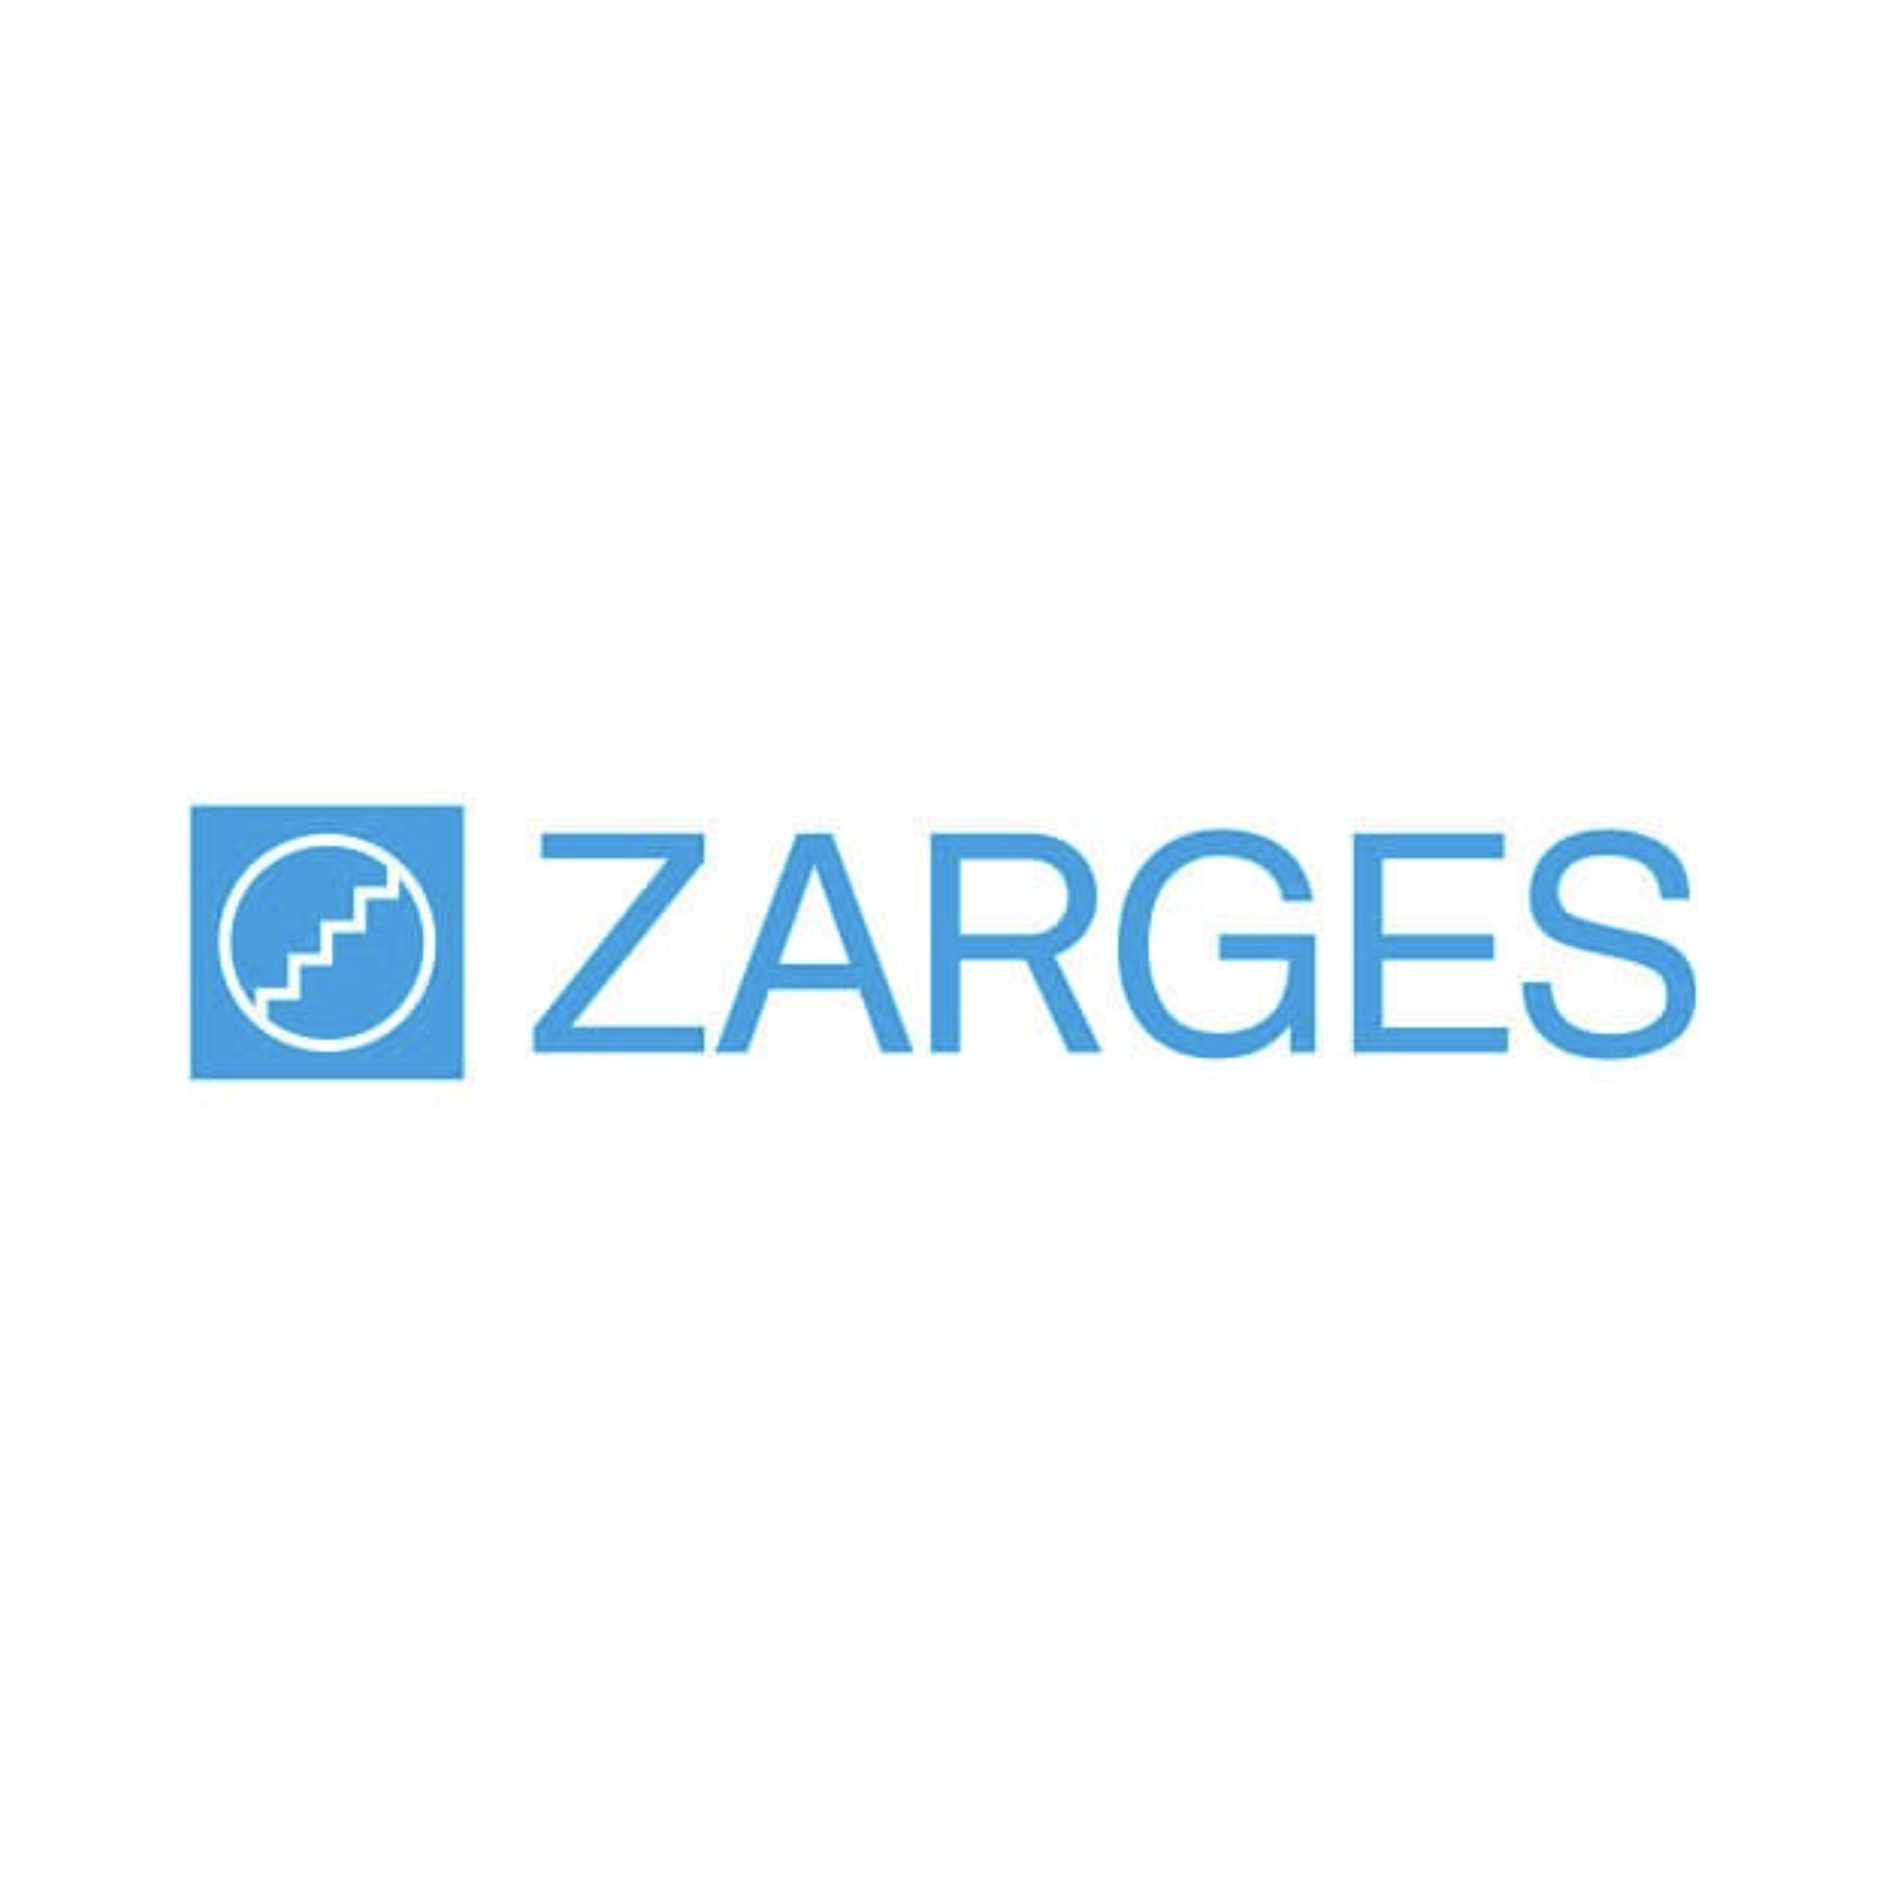 ZARGES Access Solutions for Rail Vehicles